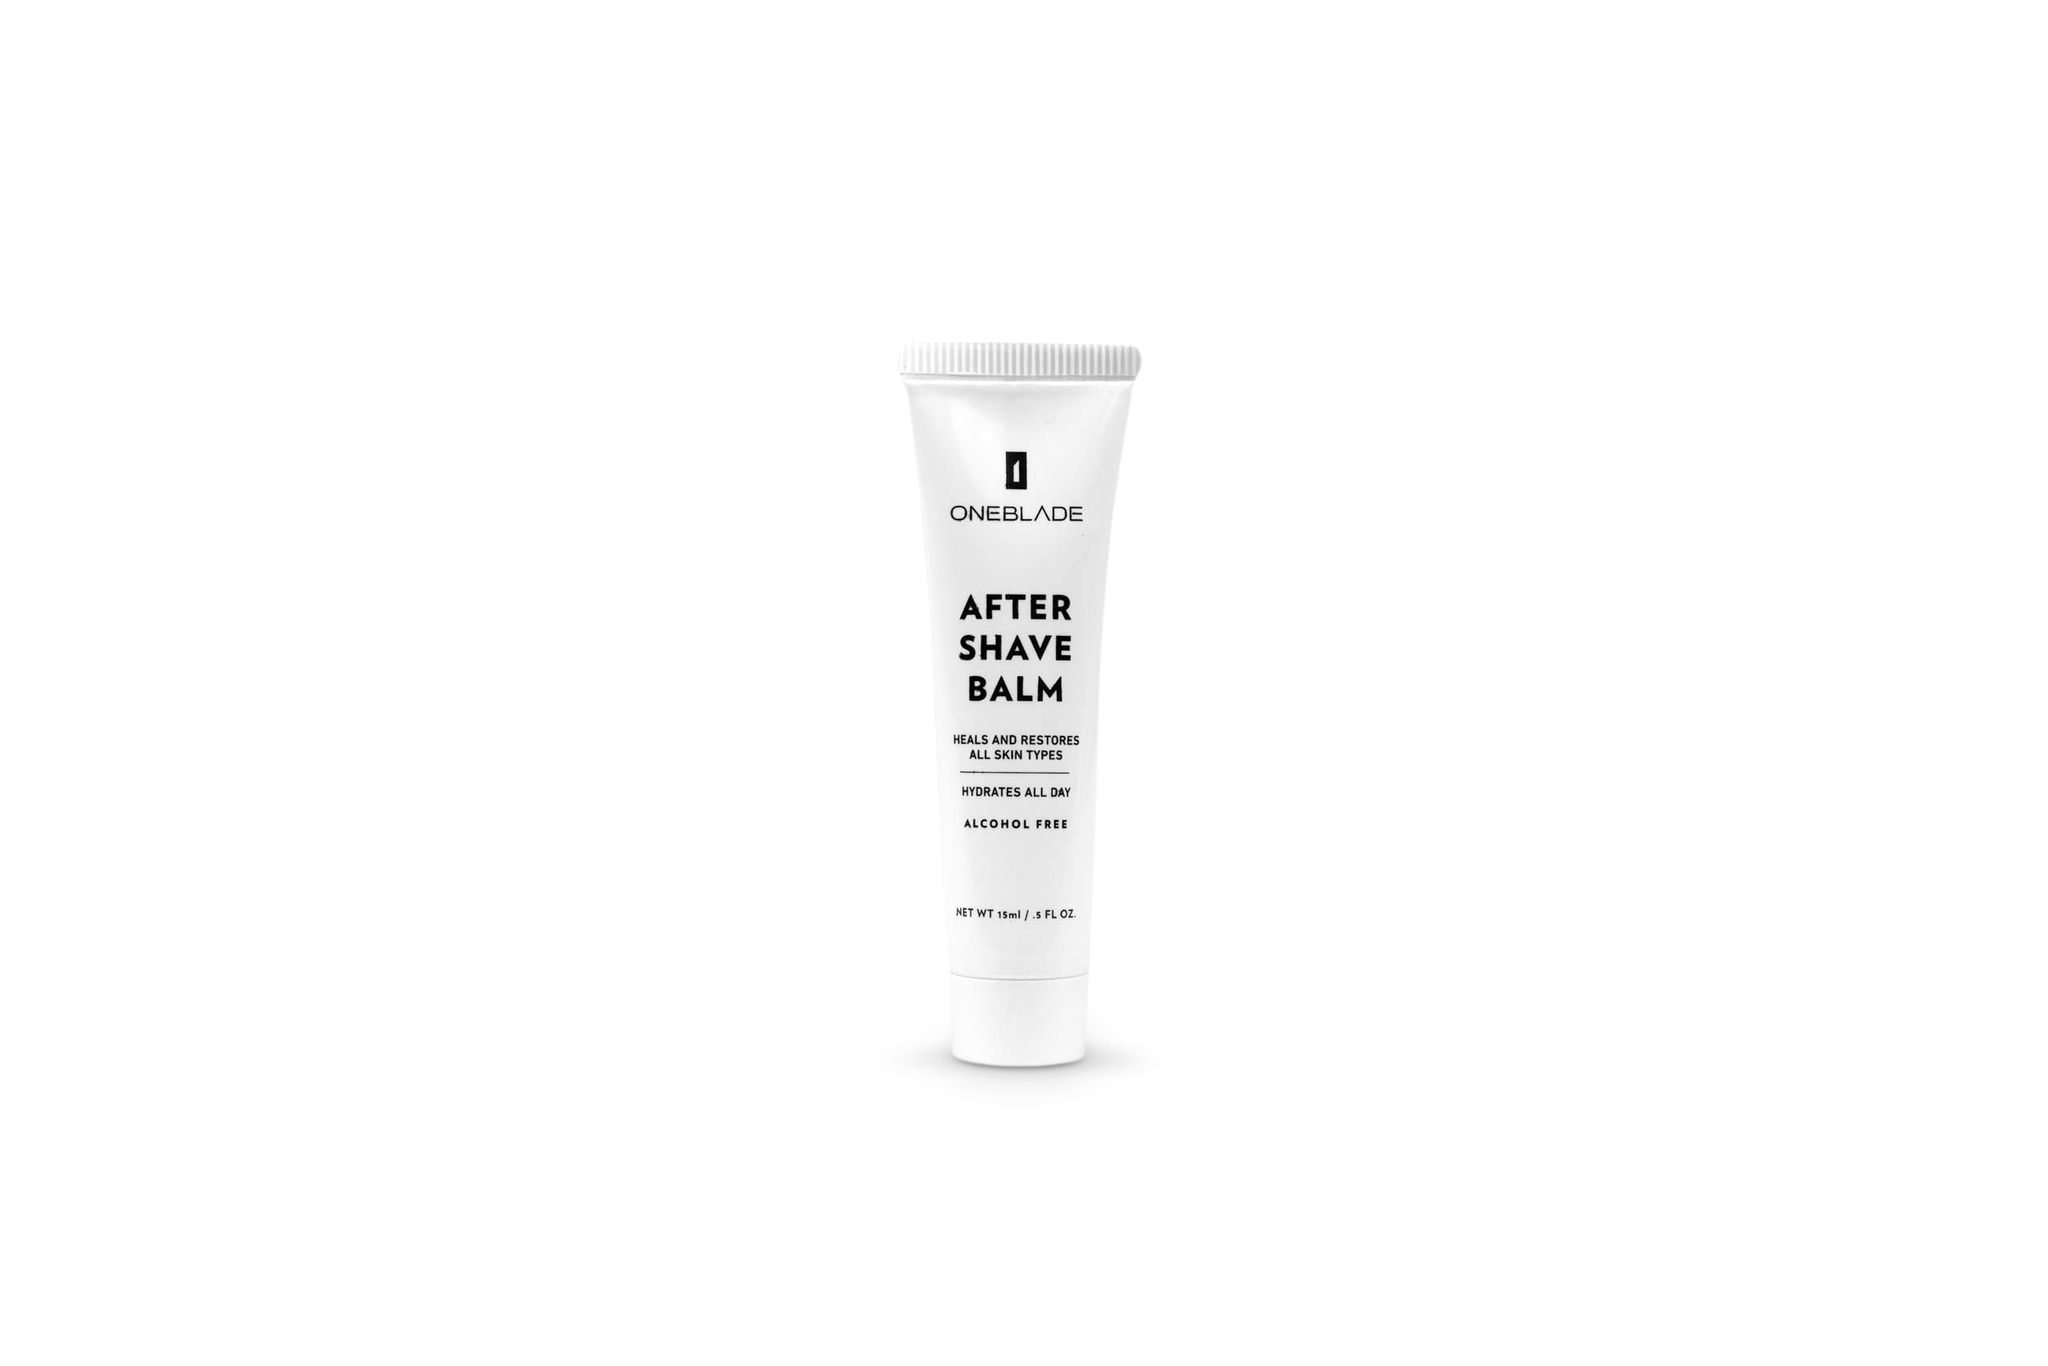 OneBlade after shave balm (travel size)